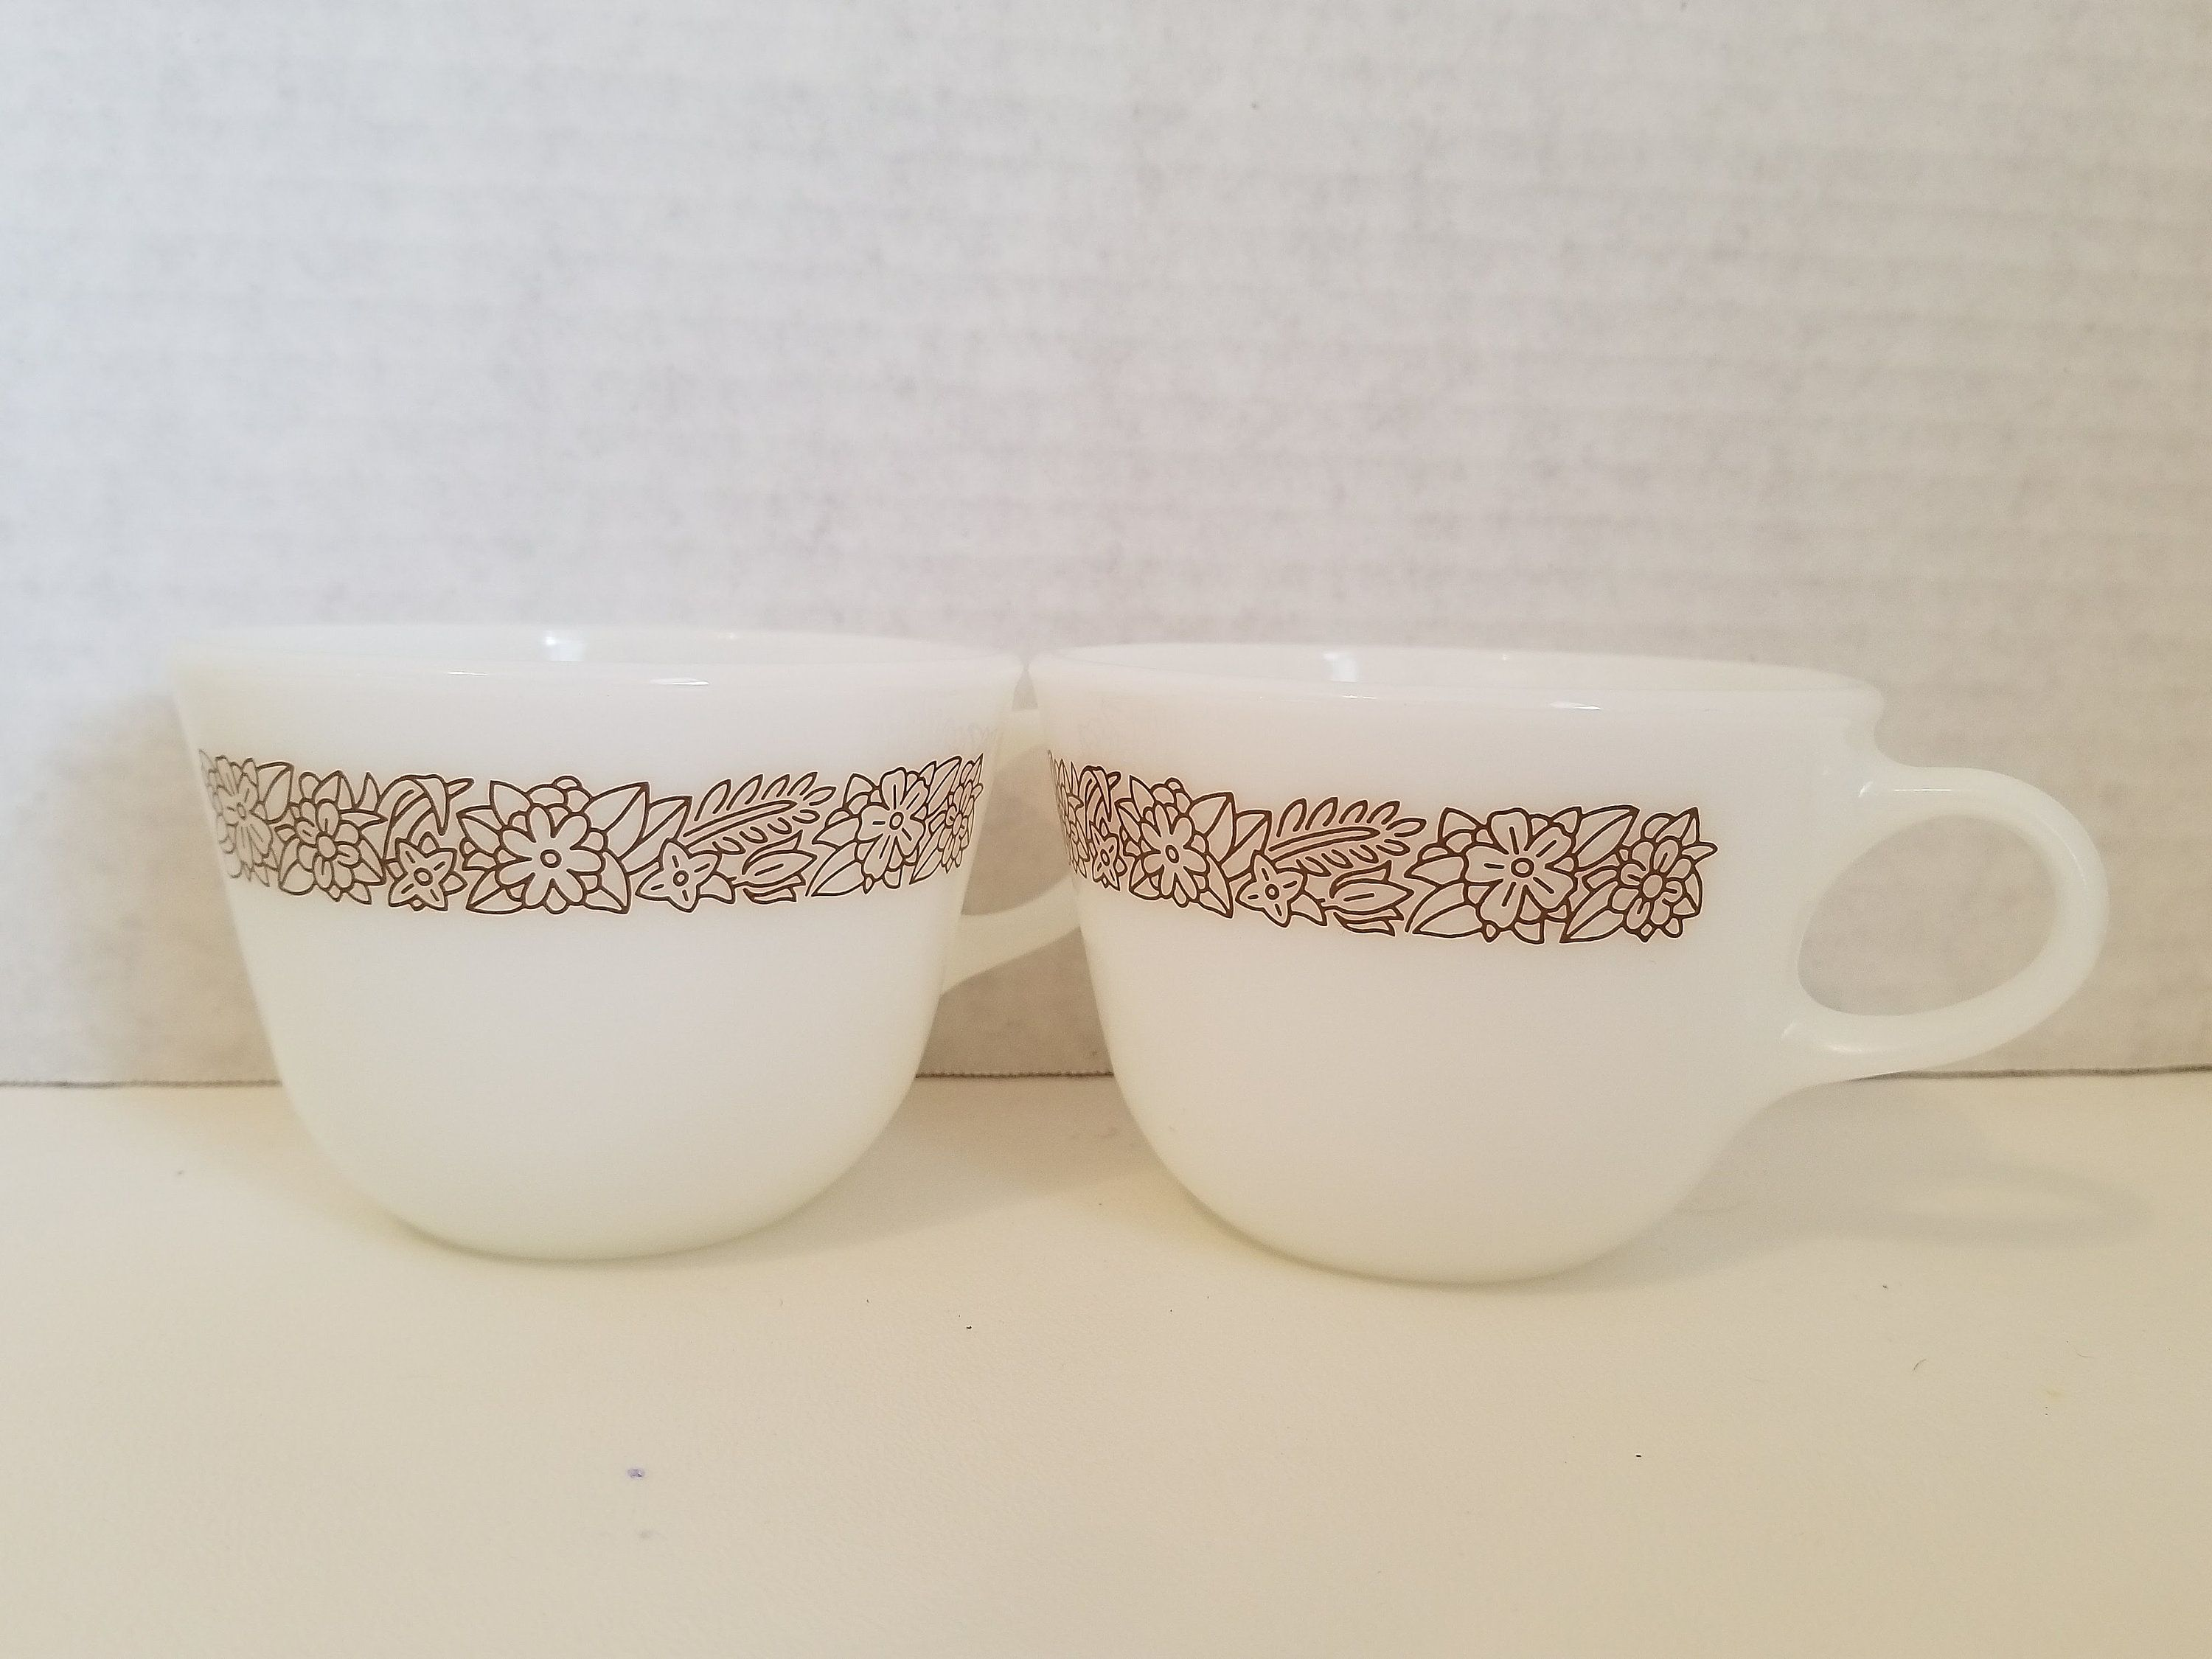 Noble Pyrex Coffee Cups By Corningware Brown Flower Coffee Very Hard To Good A Family Pyrex Coffee Cups By Corningware Brown Flower Microwave Safe Coffee Mugs Online India Dishwasher Safe Coffee Mugs